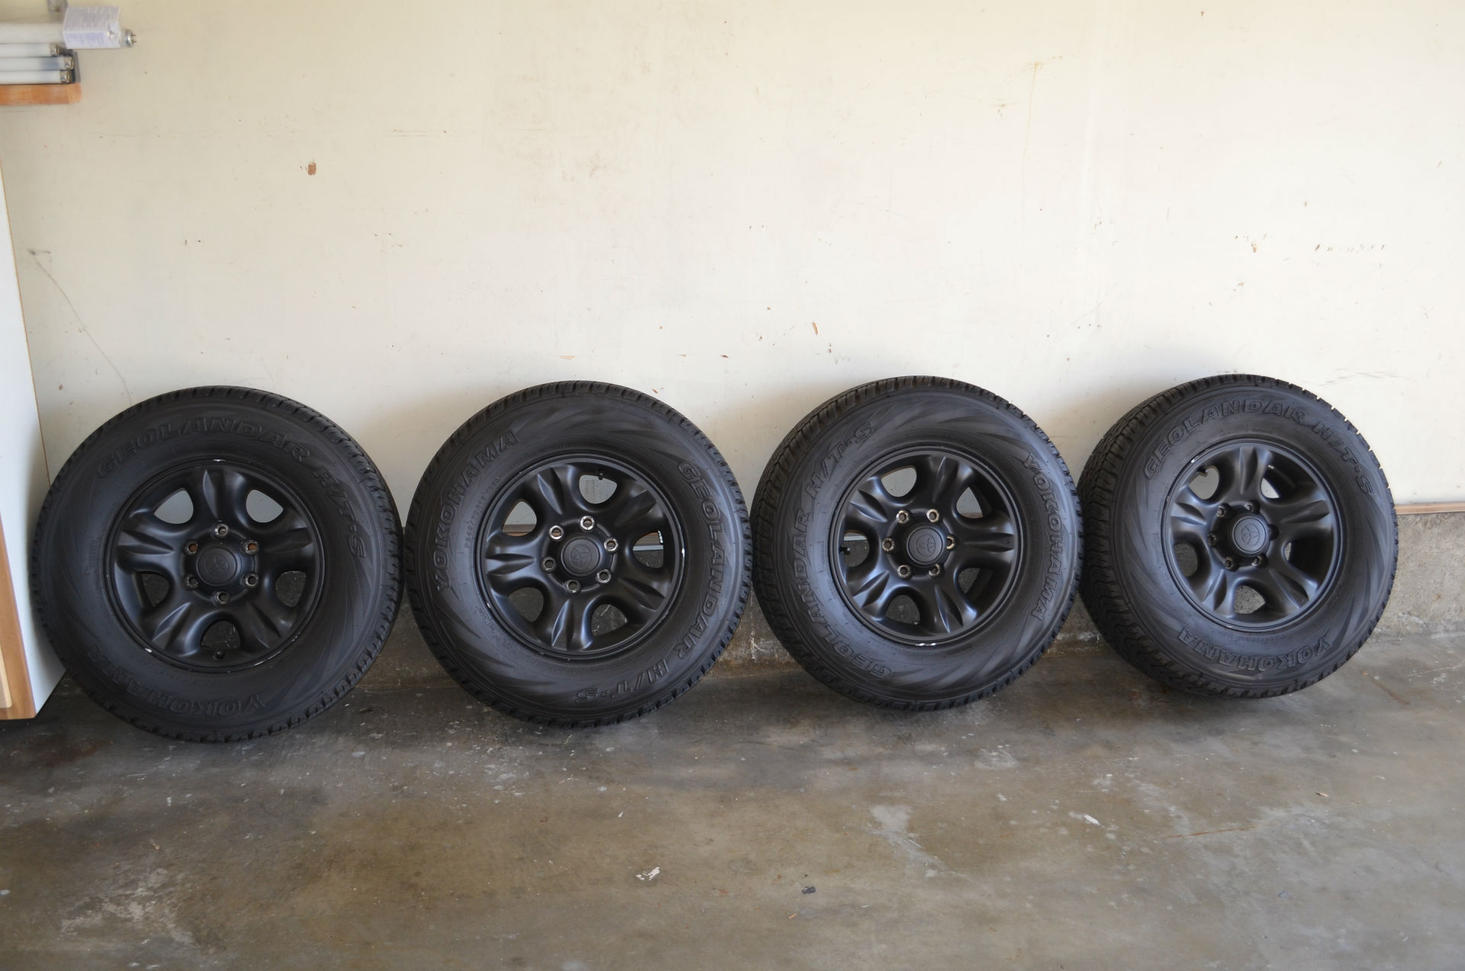 FS in So Cal: Set of Yokohama Geolandar H/T-S 245/70R16 on 3rd Gen 4R Wheels- 0-yoko-1_small-jpg